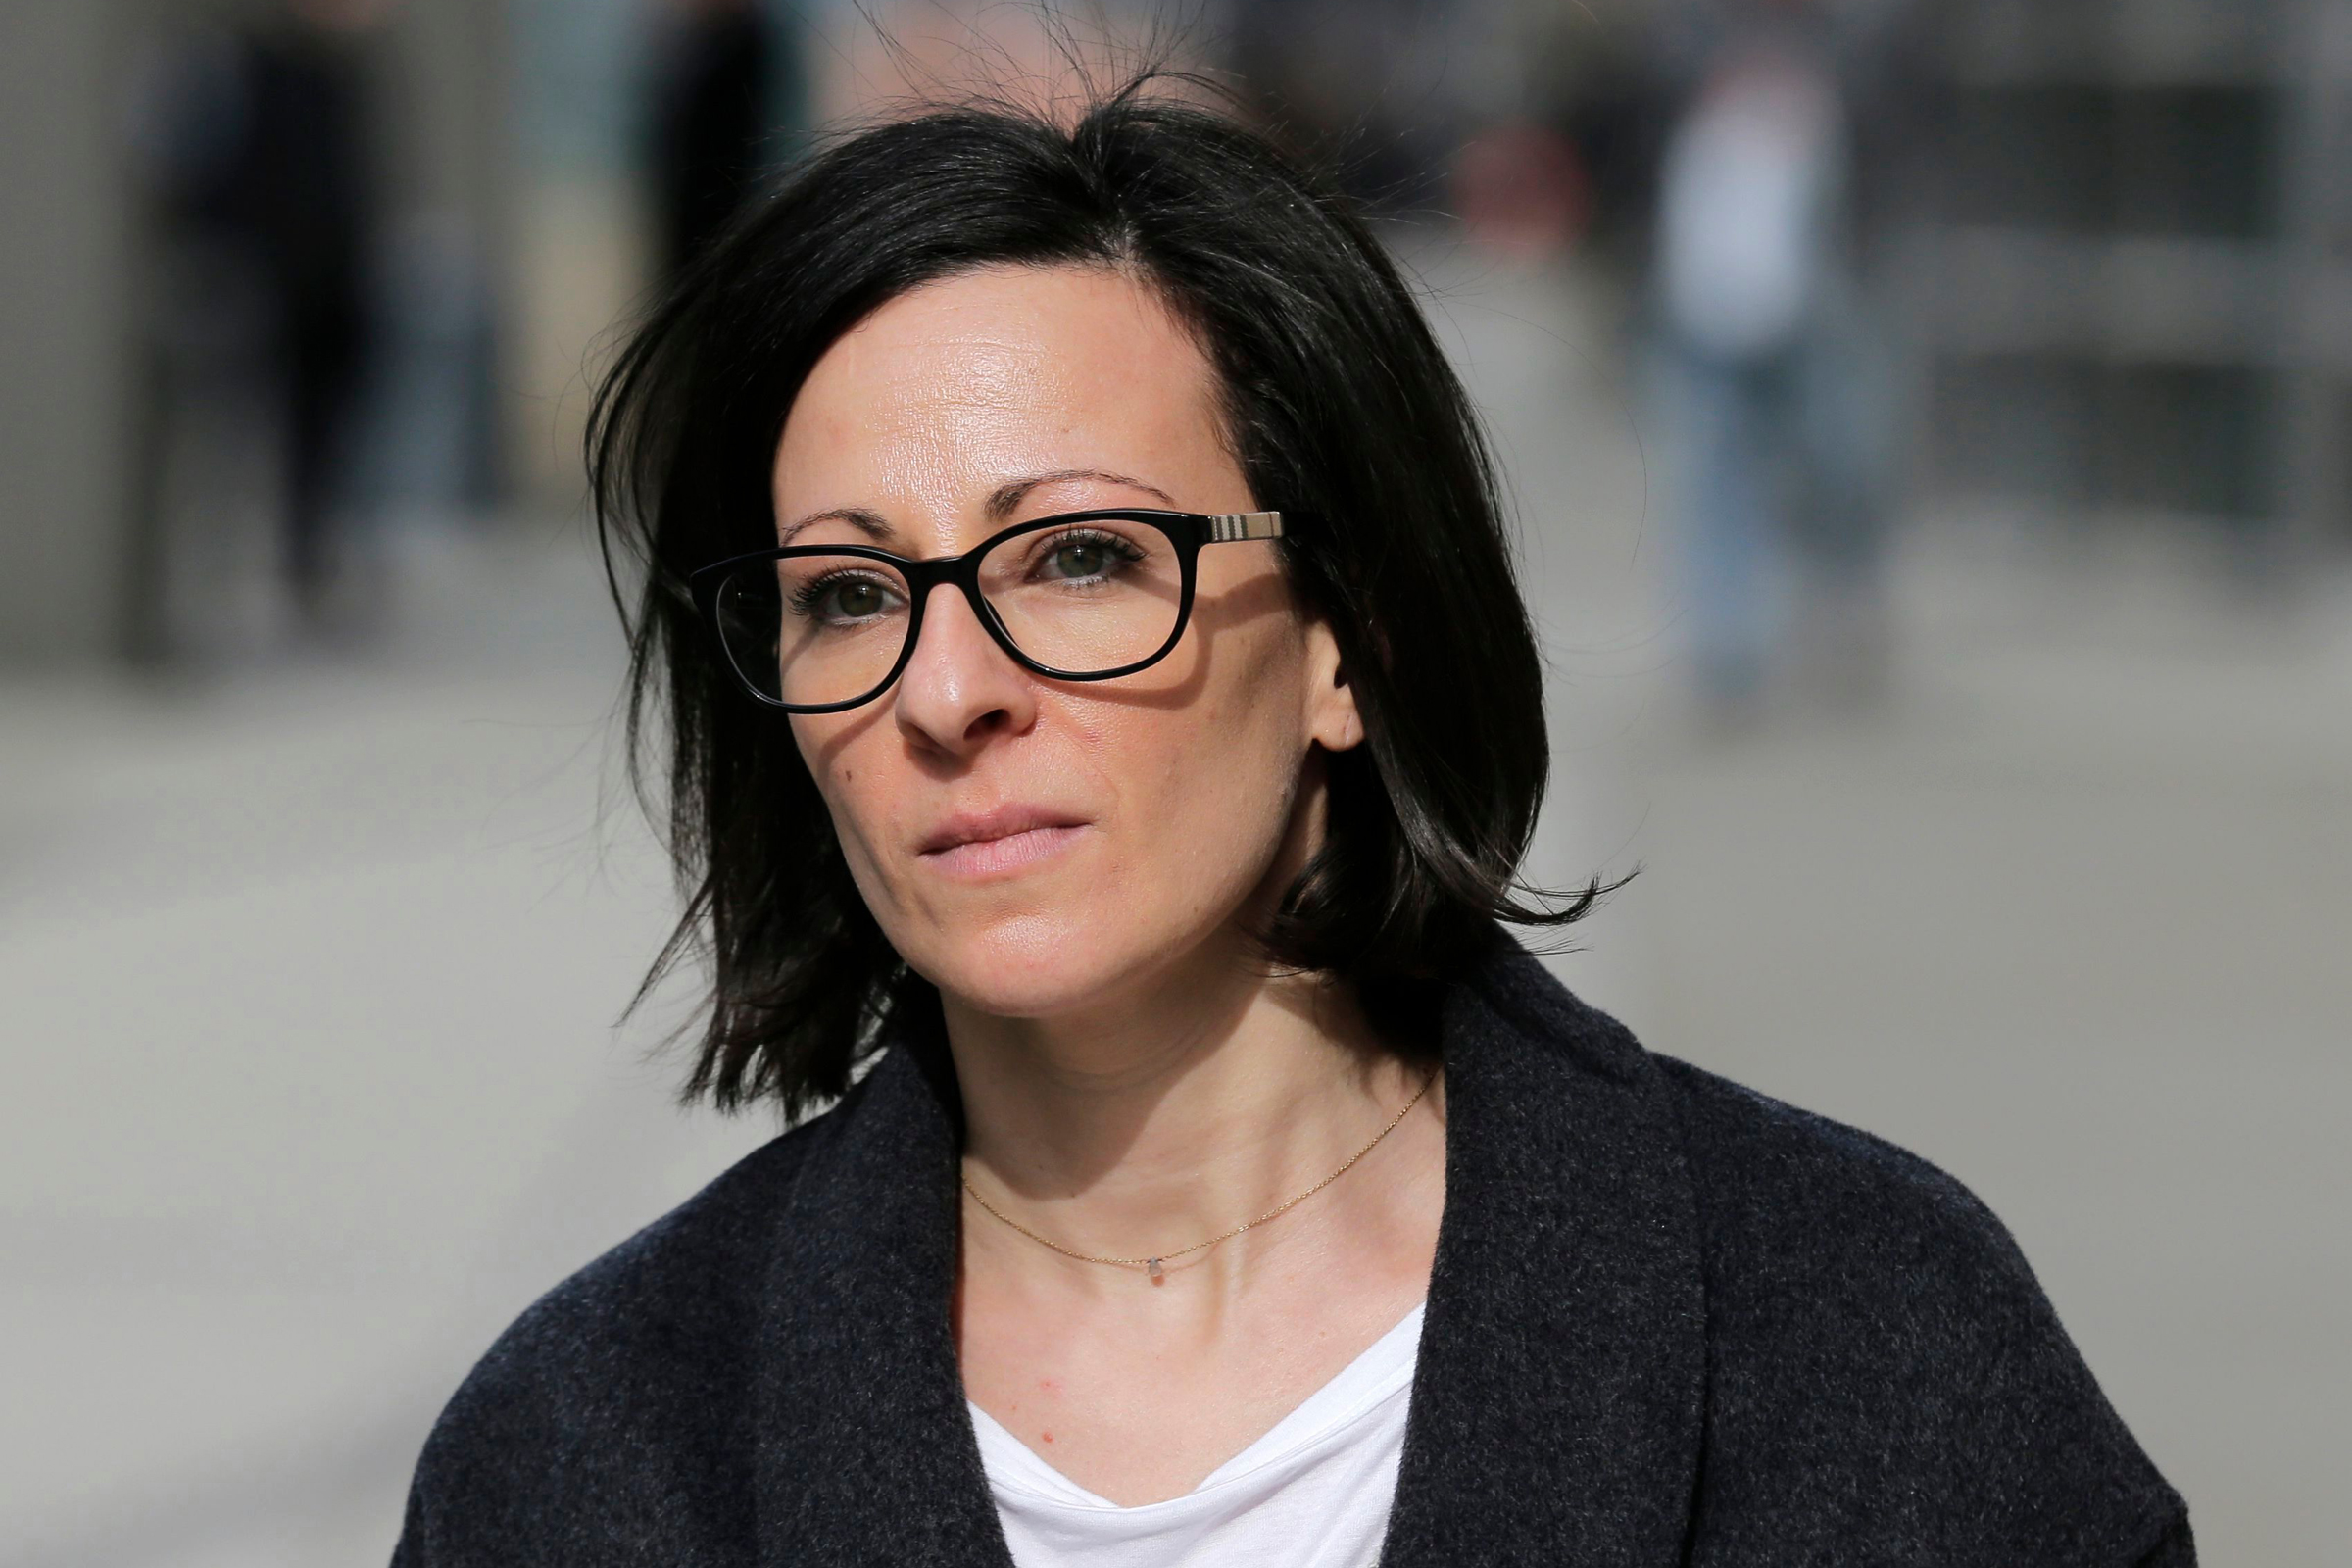 """Lauren Salzman leaves Brooklyn federal court in New York, . Salzman is among defendants from the self-help group NXIVM, co-founded my her mother Nancy Salzman, charged with coercing women to be a part of a secret sub-group where they were expected to act as """"slaves"""" and engage in sex actsBranded Women, New York, USA - 28 Jan 2019"""